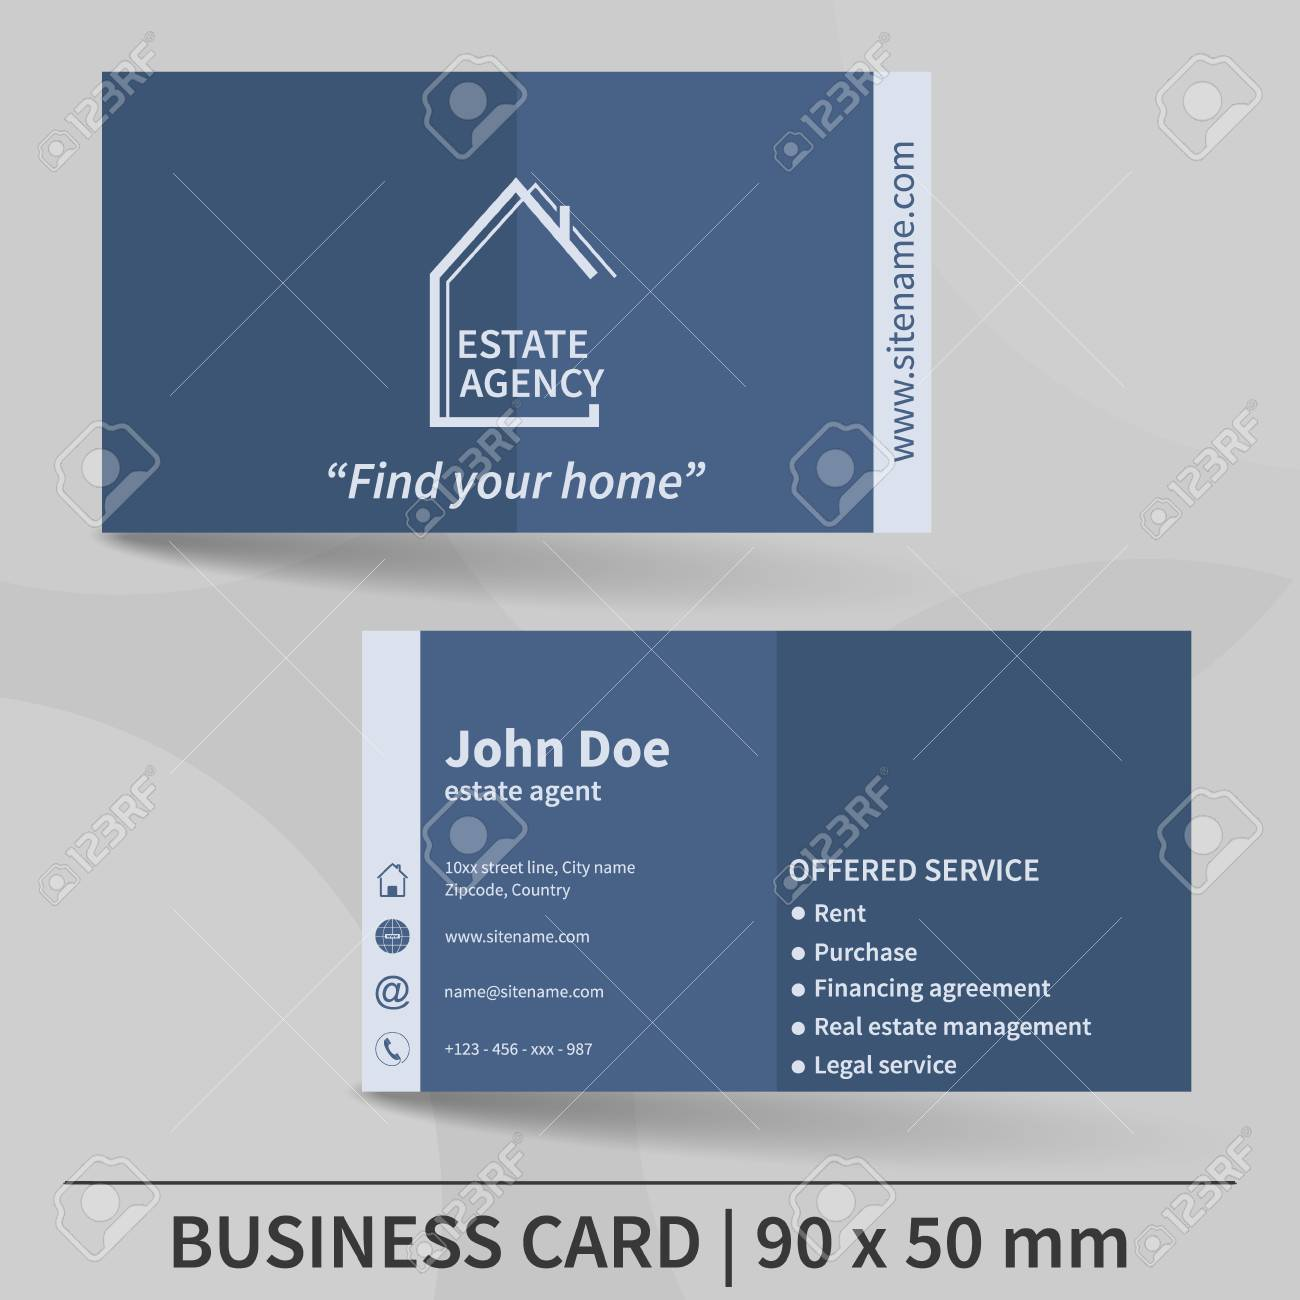 Business card template real estate agency design for your business card template real estate agency design for your individual or business presentation reheart Gallery